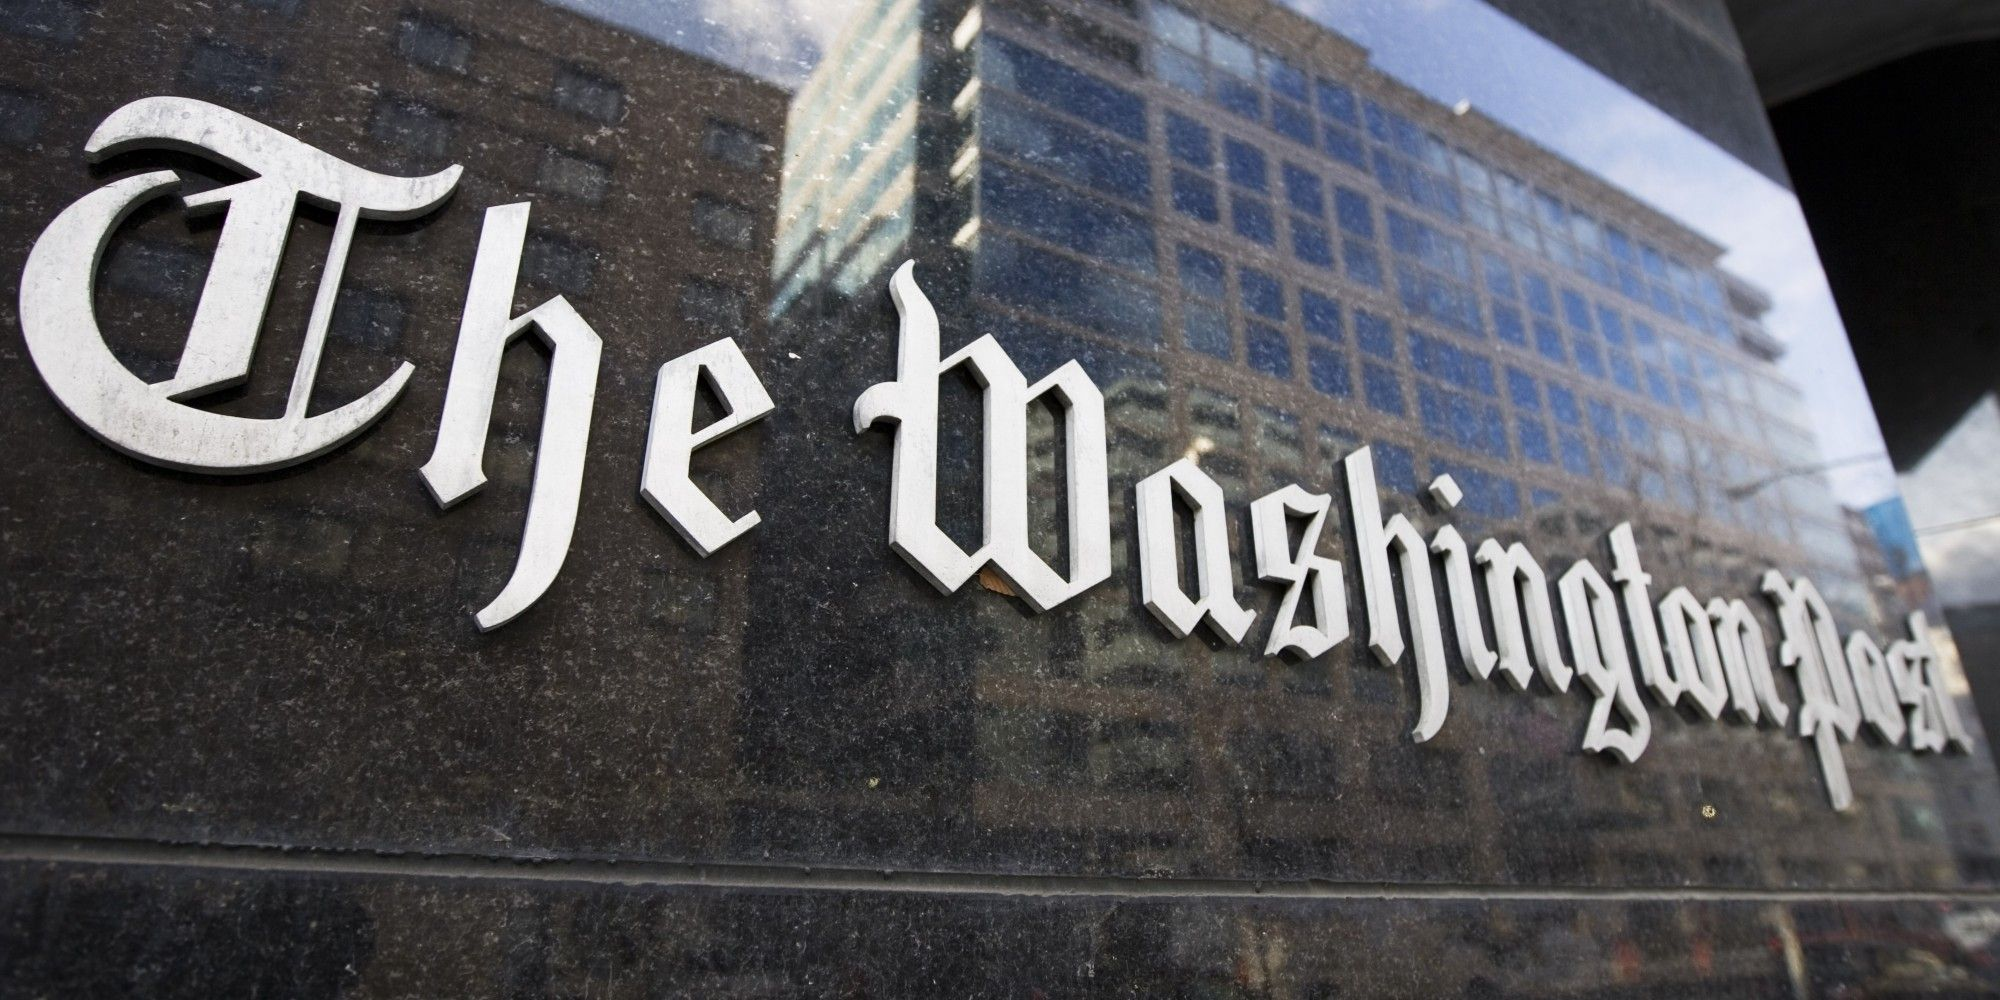 FILE - In this Feb. 27, 2008 file photo, The Washington Post building in Washington is shown. The Washington Post Co. reported a 69 percent jump in third-quarter profit Friday, Oct. 30, 2009, as its newspapers trimmed their losses and its cable TV and education divisions held steady.(AP Photo/Manuel Balce Ceneta, file)